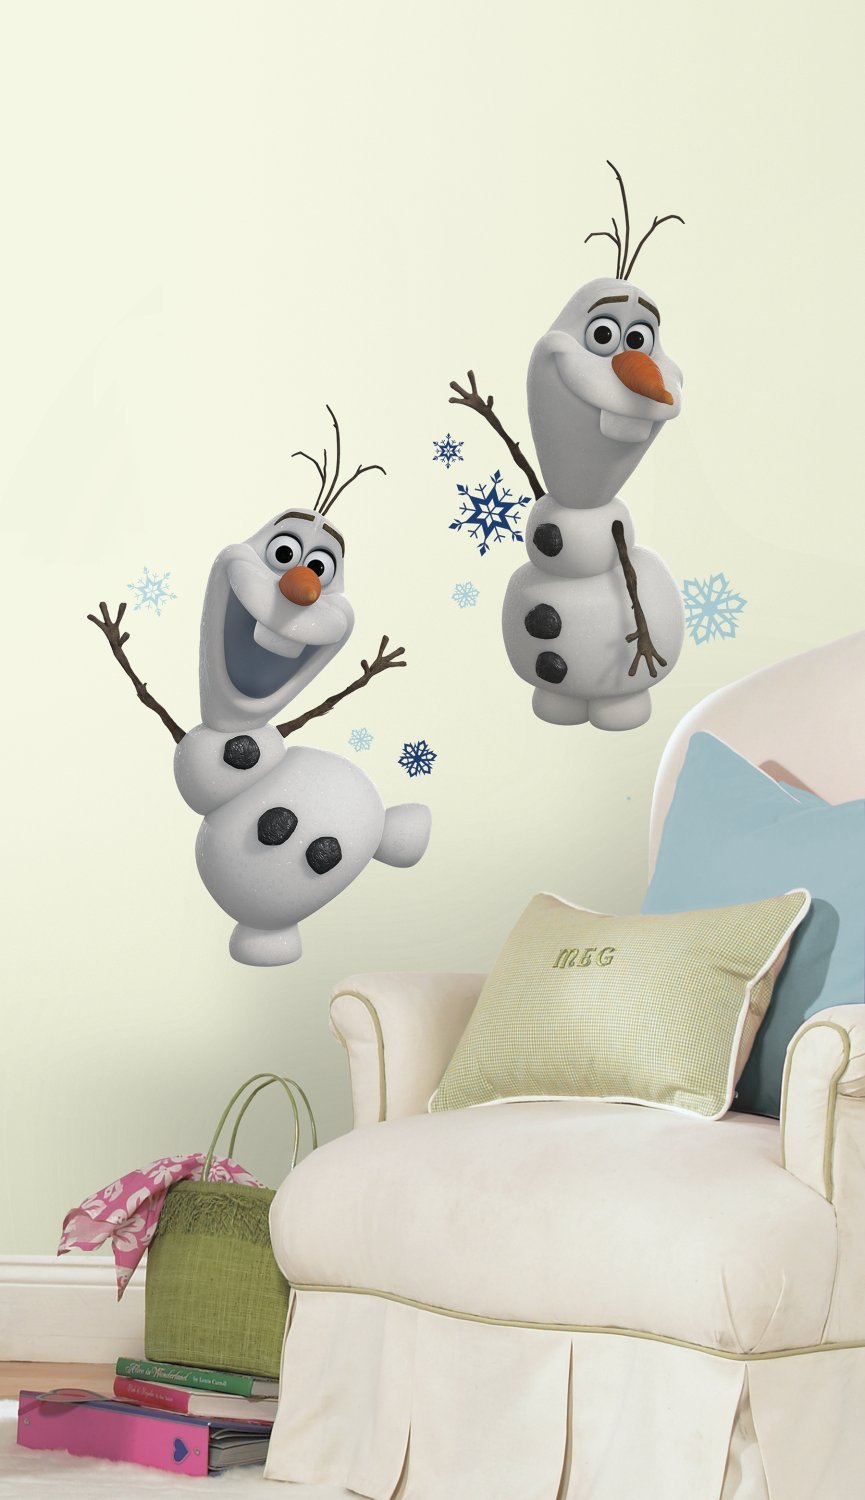 Marvelous Olaf The Snow Man Wall Decals